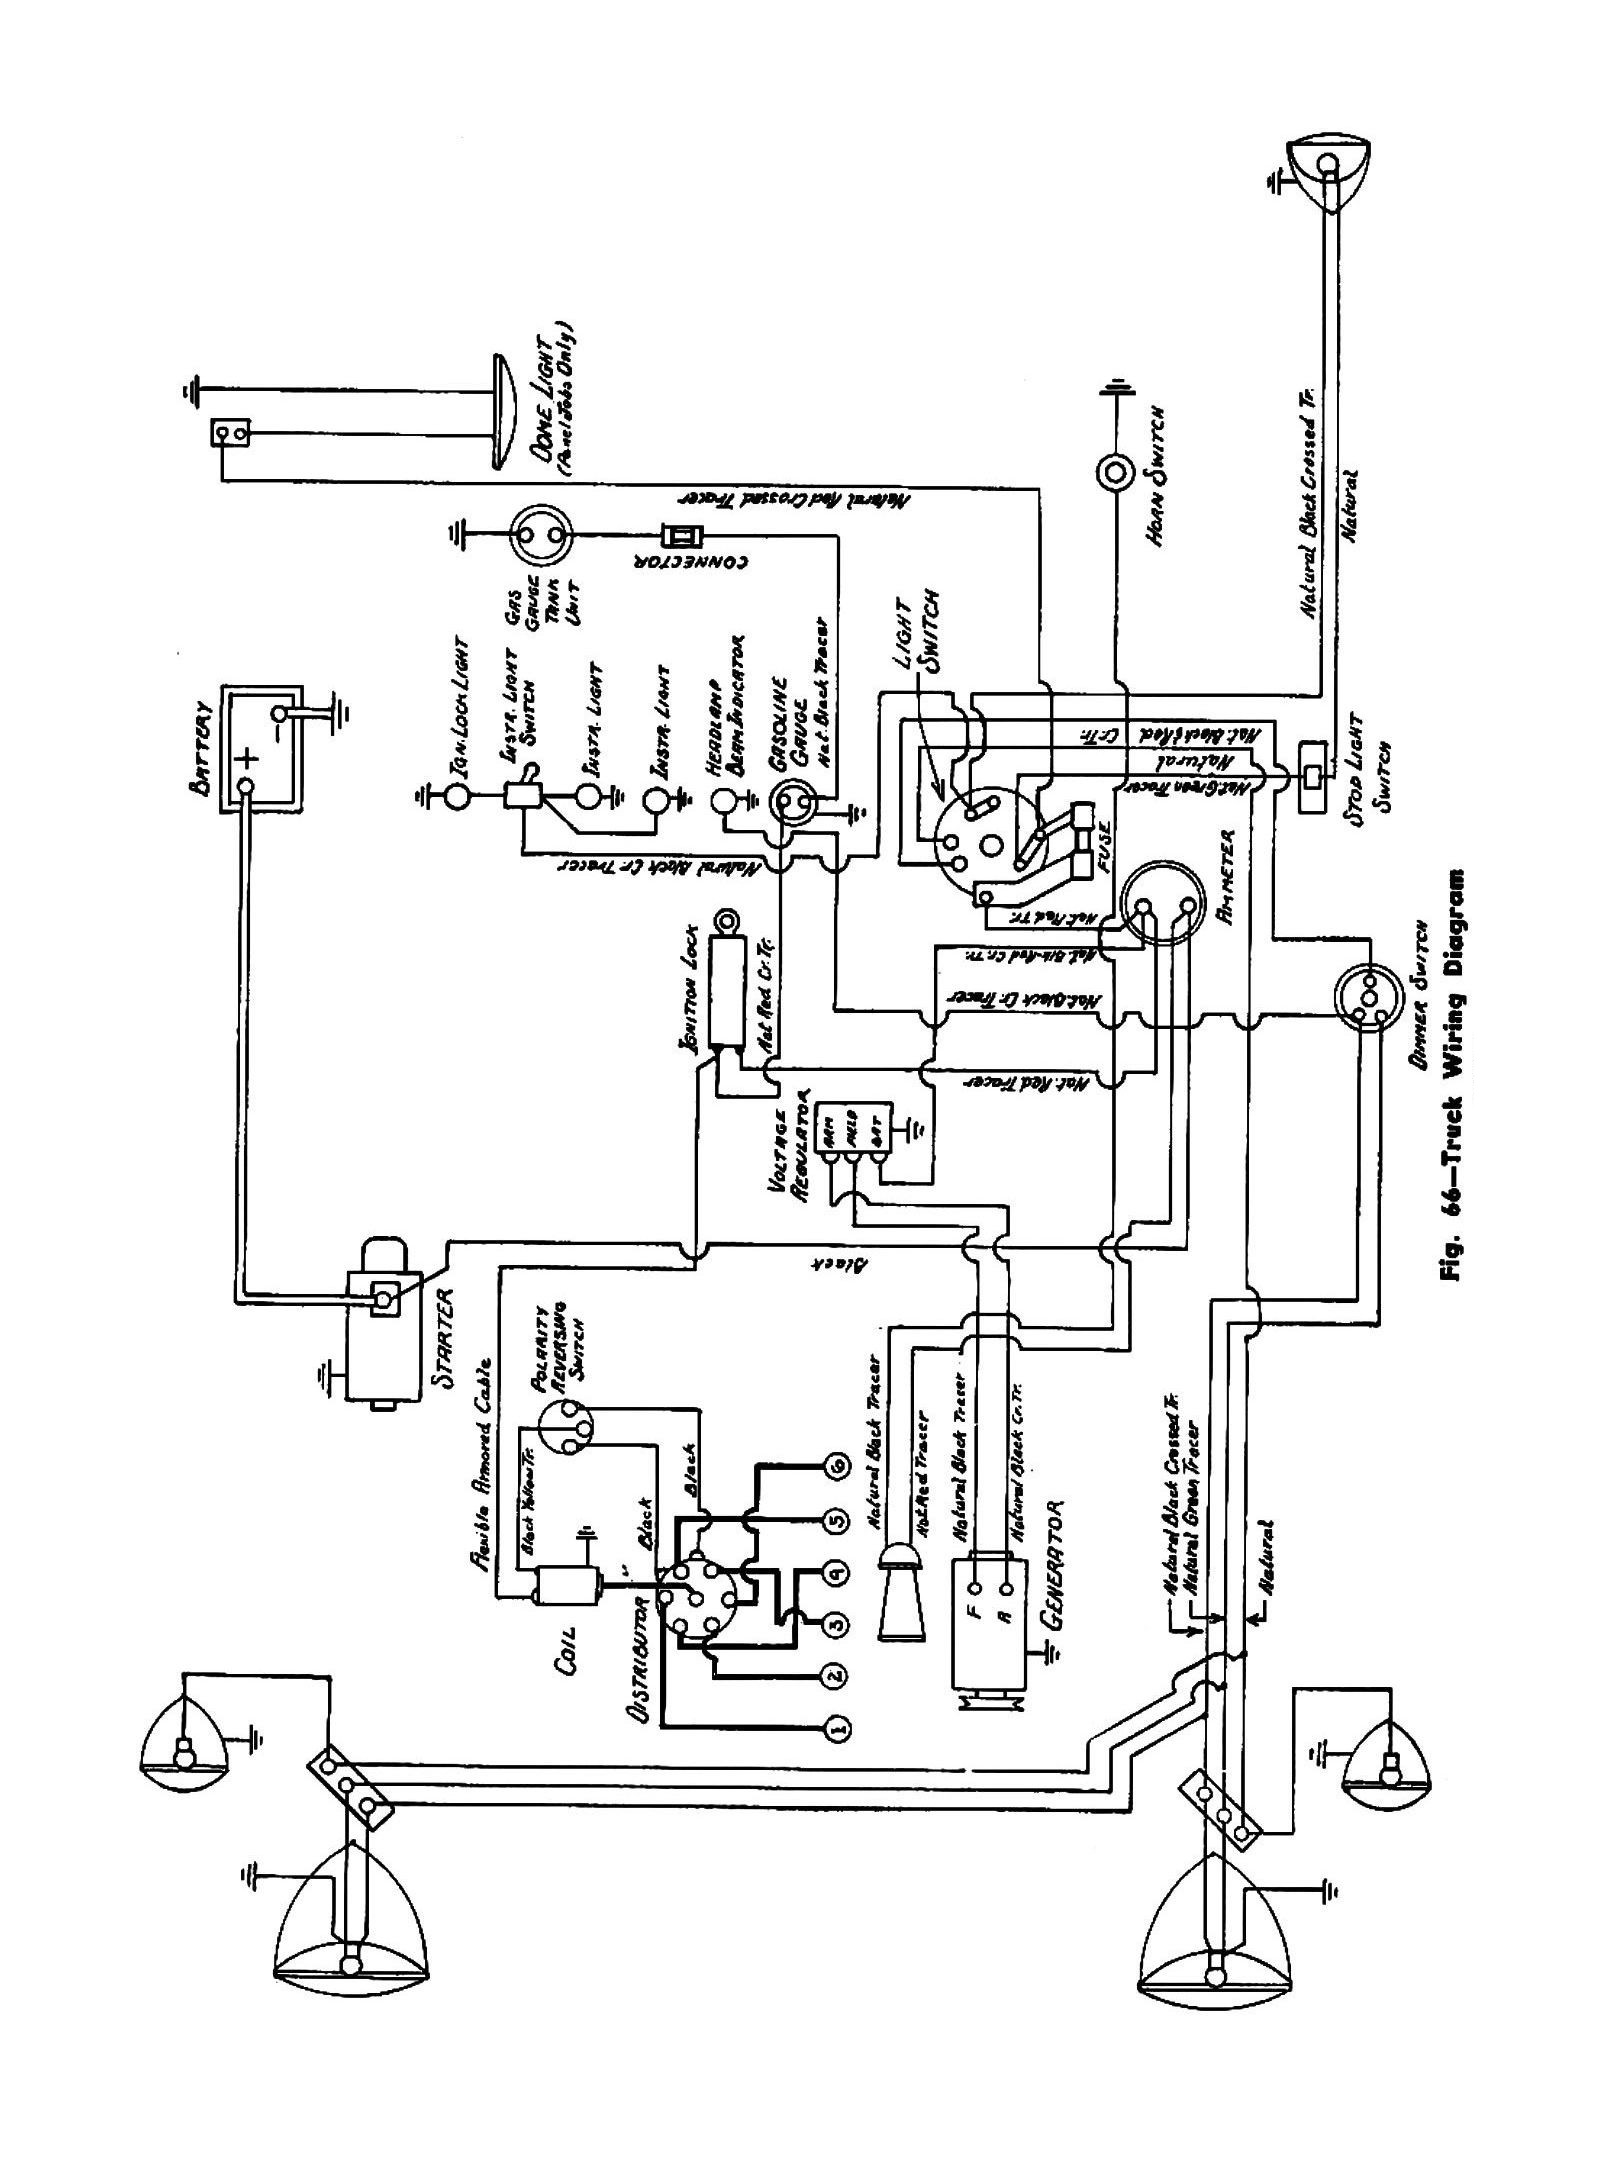 45truck chevy wiring diagrams Ford Wiring Harness Diagrams at reclaimingppi.co